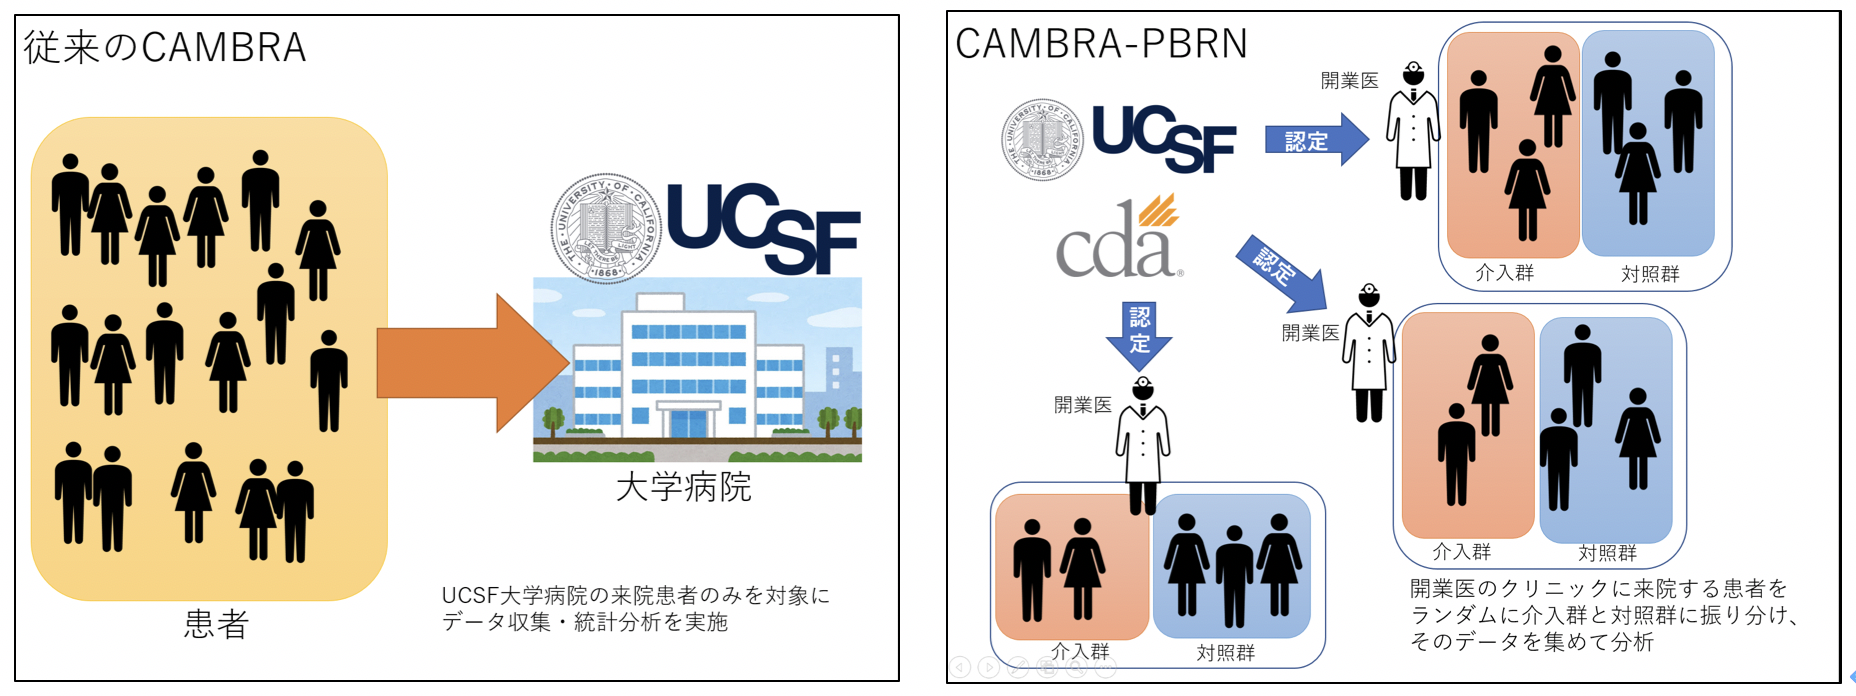 UCSF-CAMBRAからCAMBRA-PBRNへ